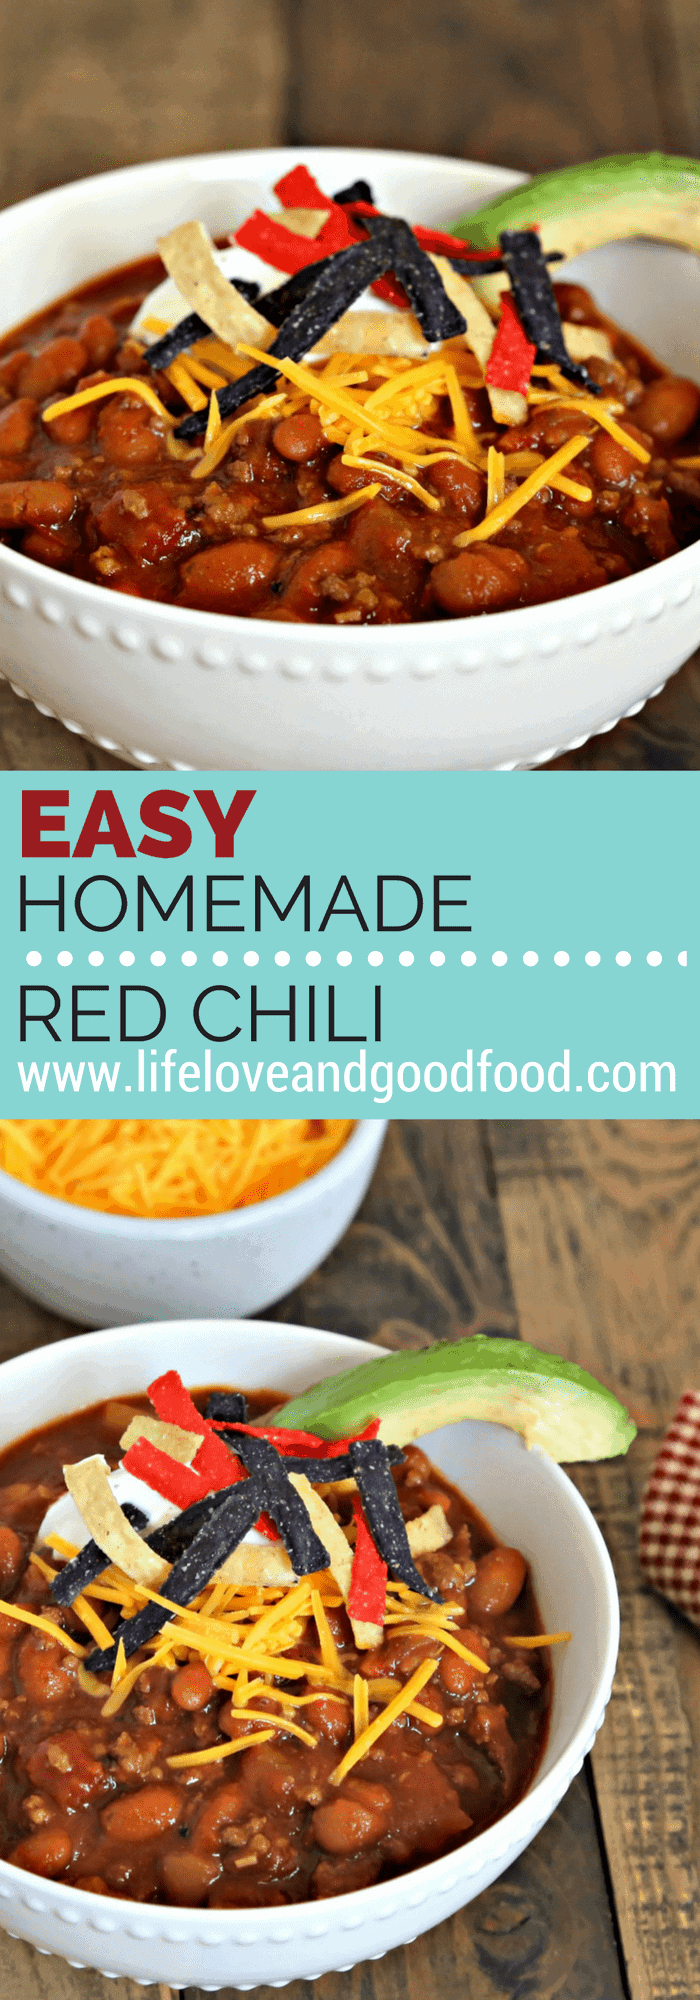 Fix it and forget it! Prepare this easy recipe for Homemade Red Chili and let it simmer in the slow cooker while you play!